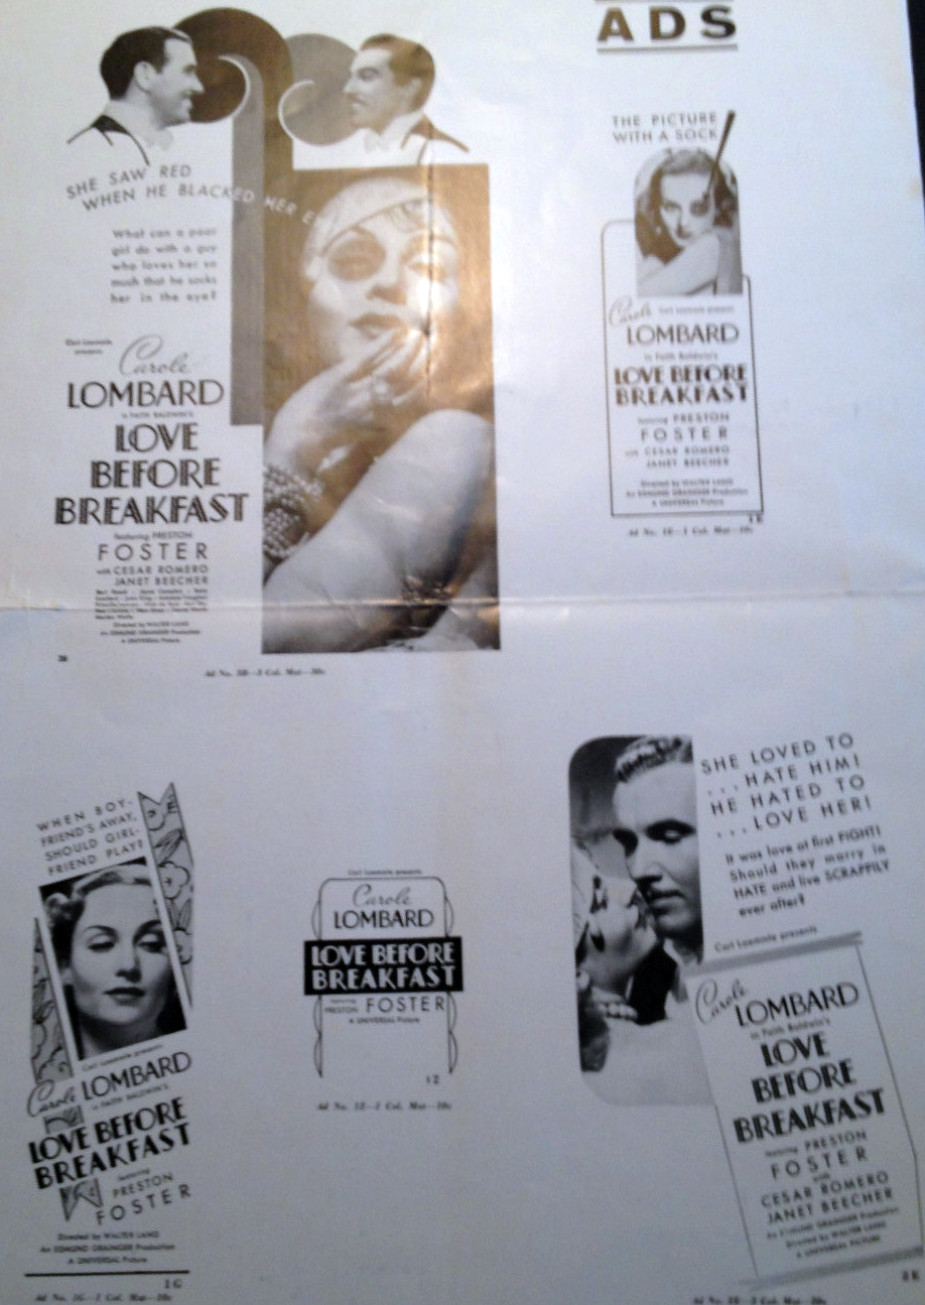 carole lombard love before breakfast pressbook 08a